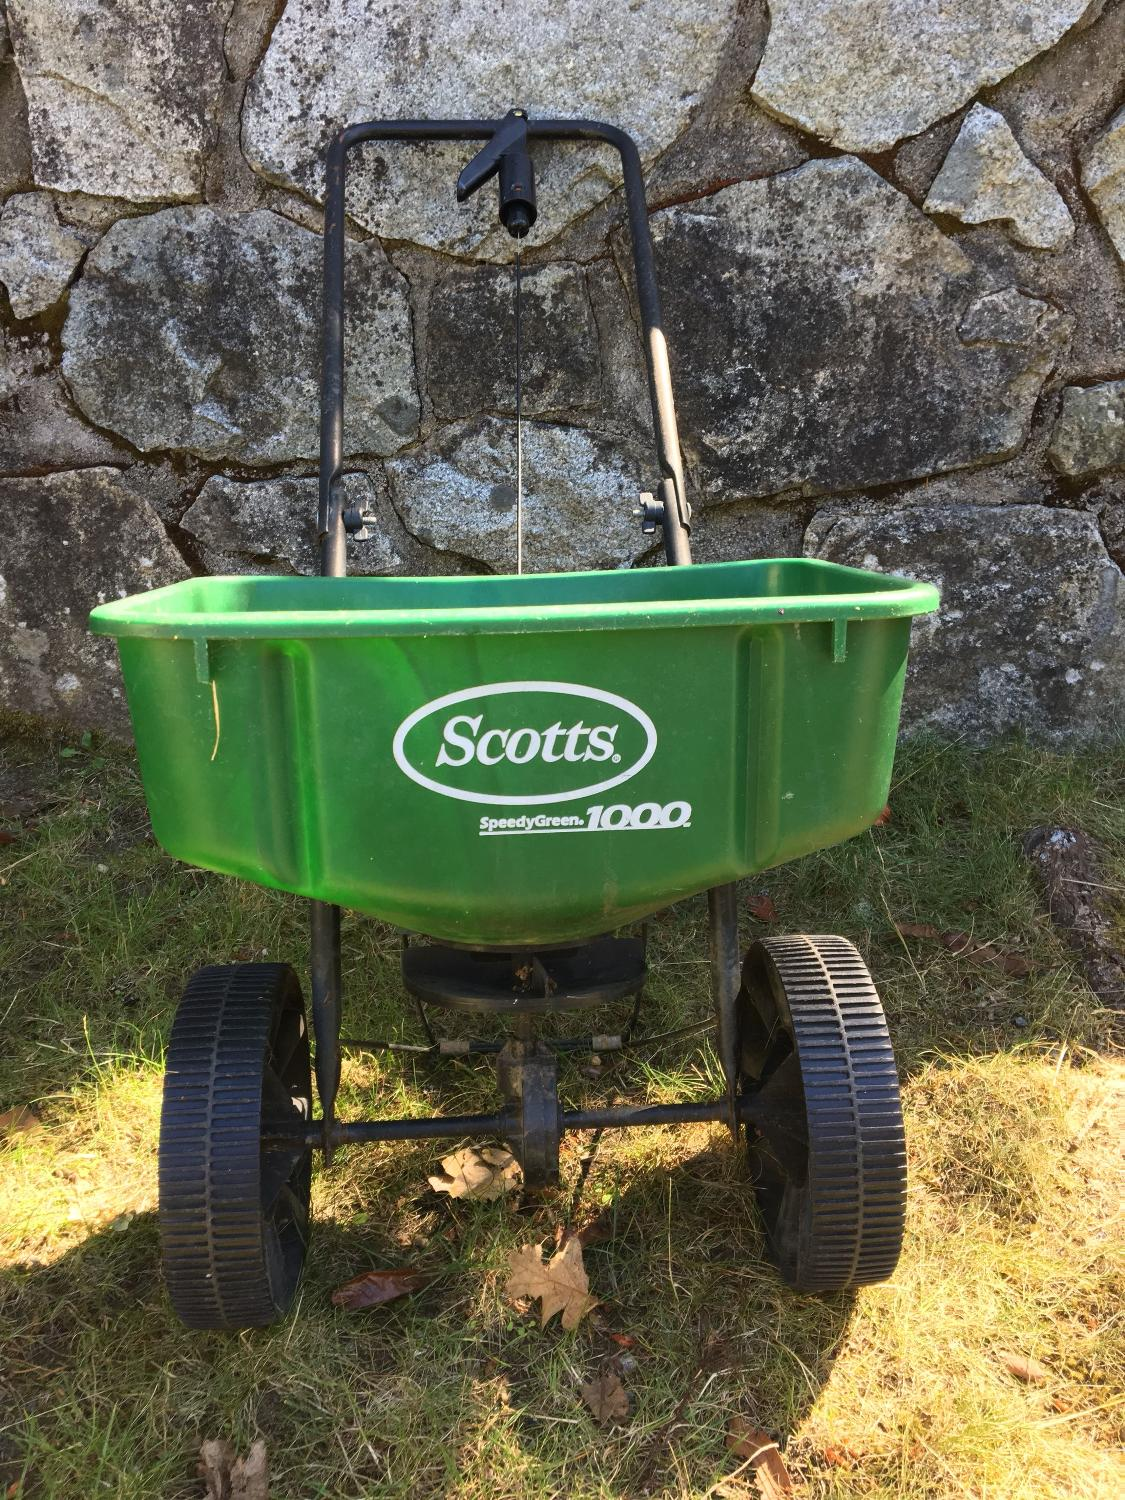 Find More Scotts Seed Or Fertilizer Spreader For Sale At Up To 90 Off